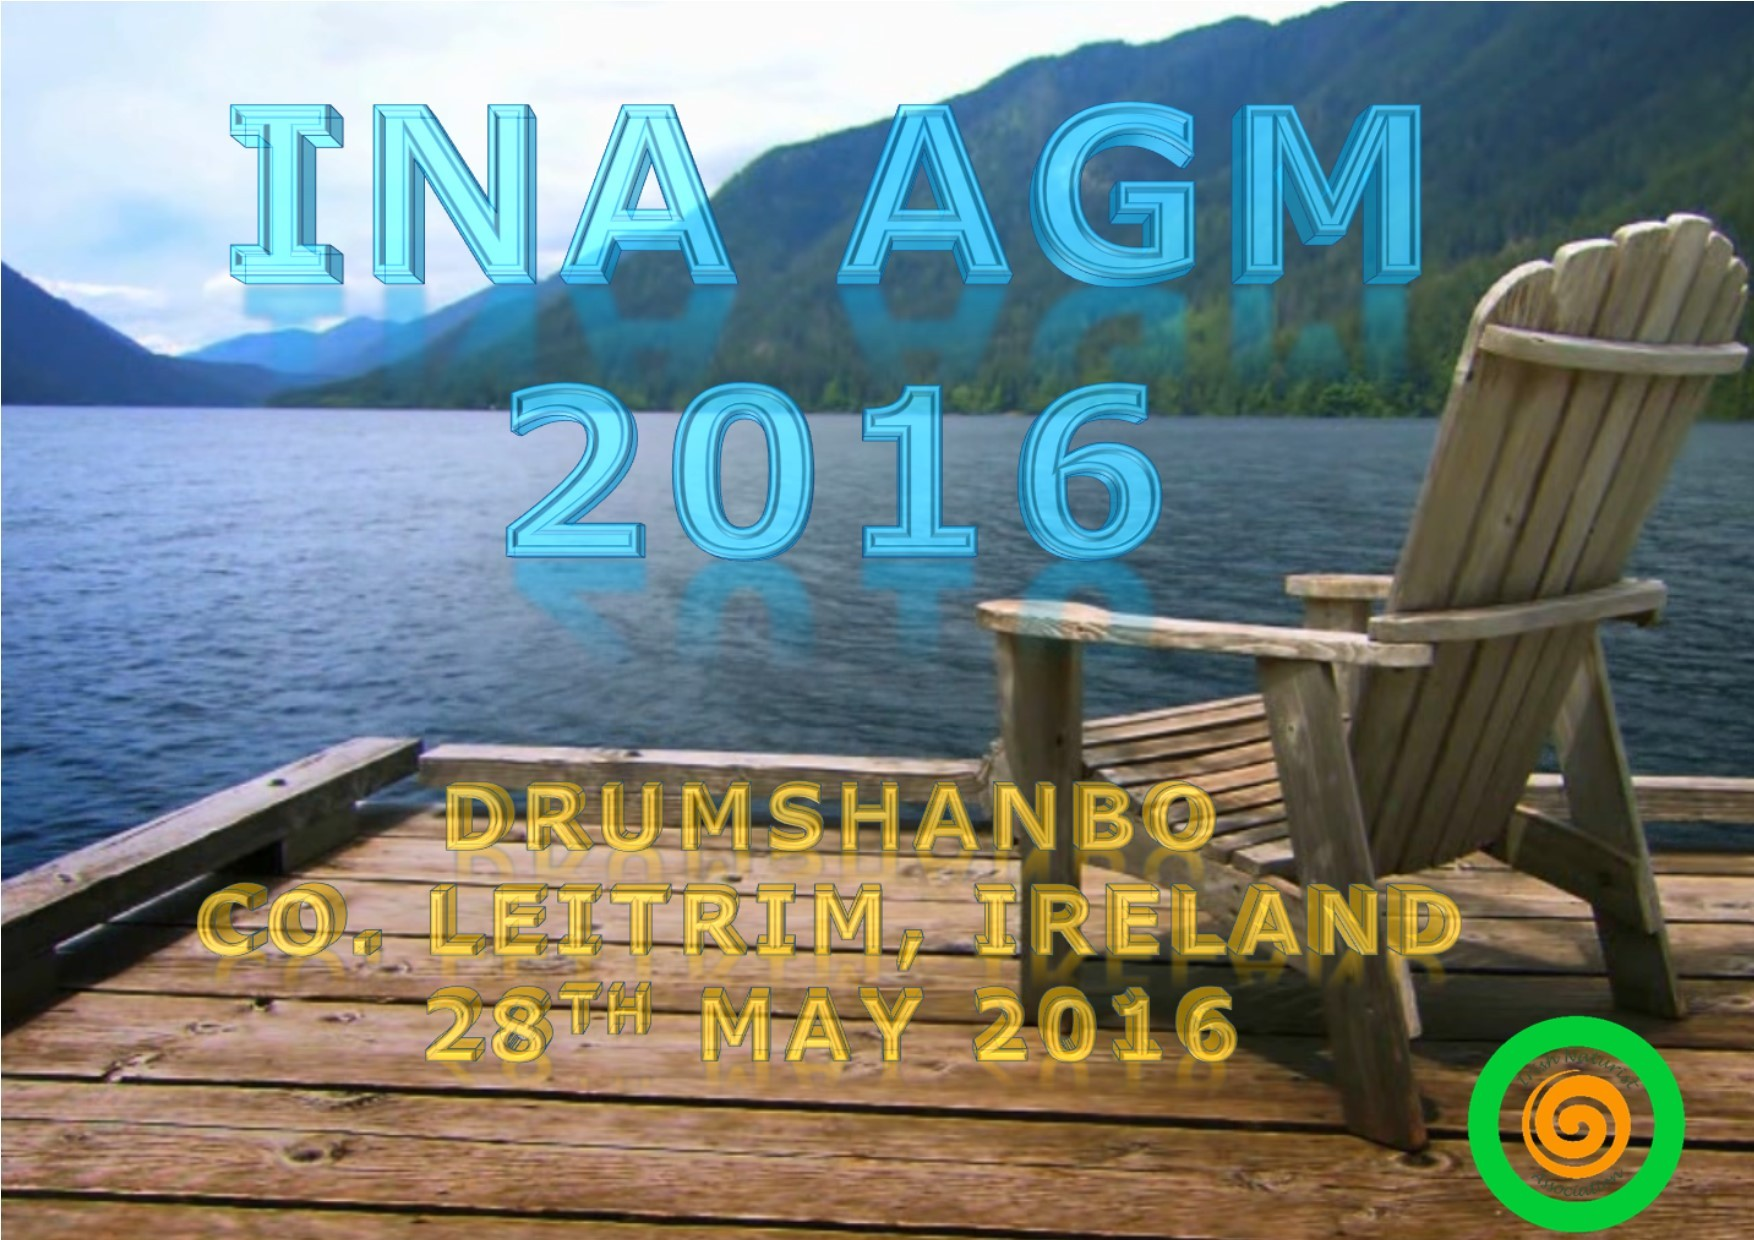 Cover pic INA AGM for video